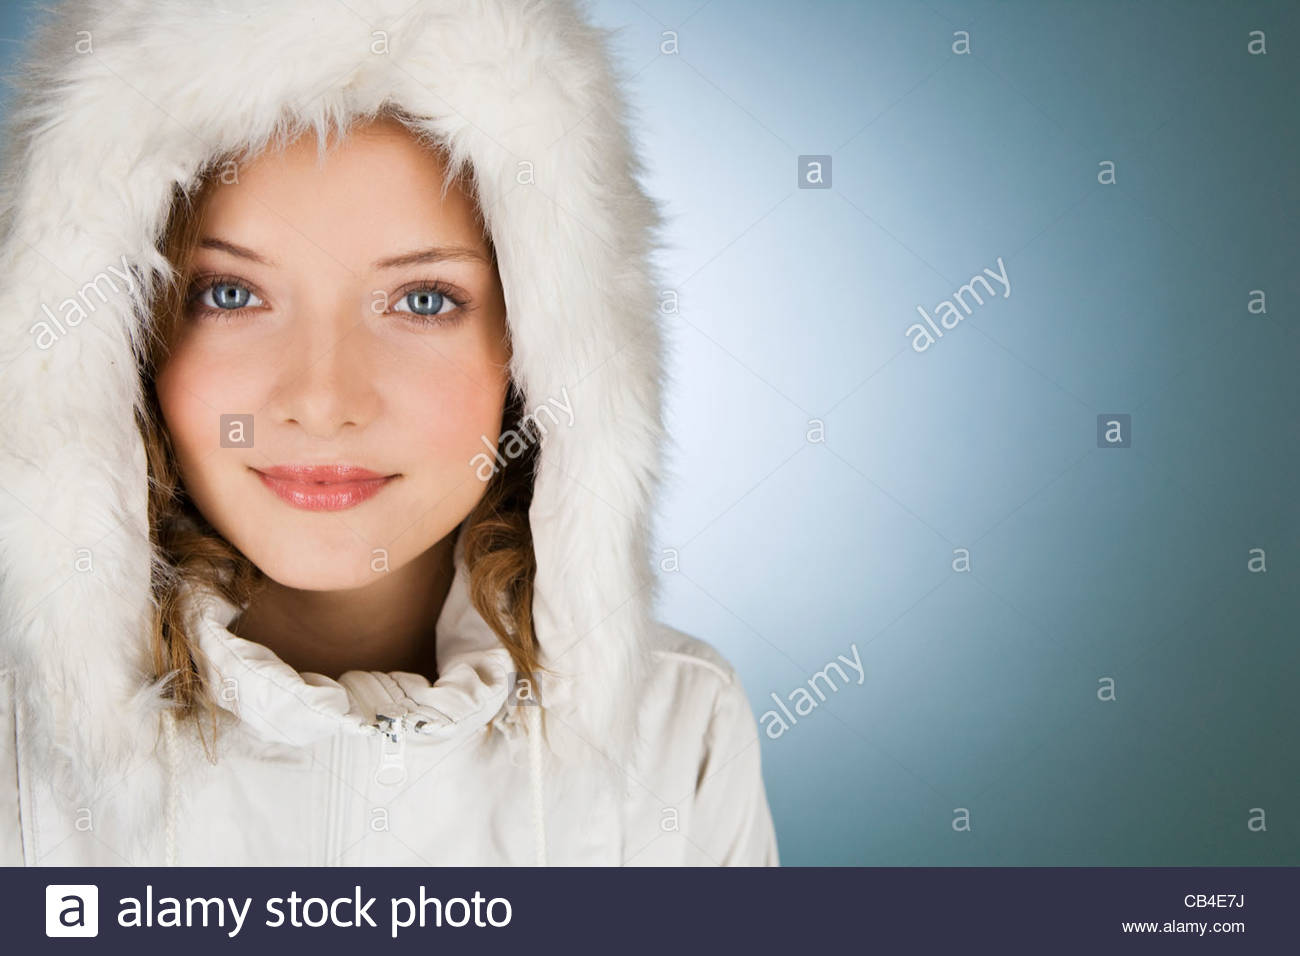 A young woman wearing a winter coat with a fur hood - Stock Image